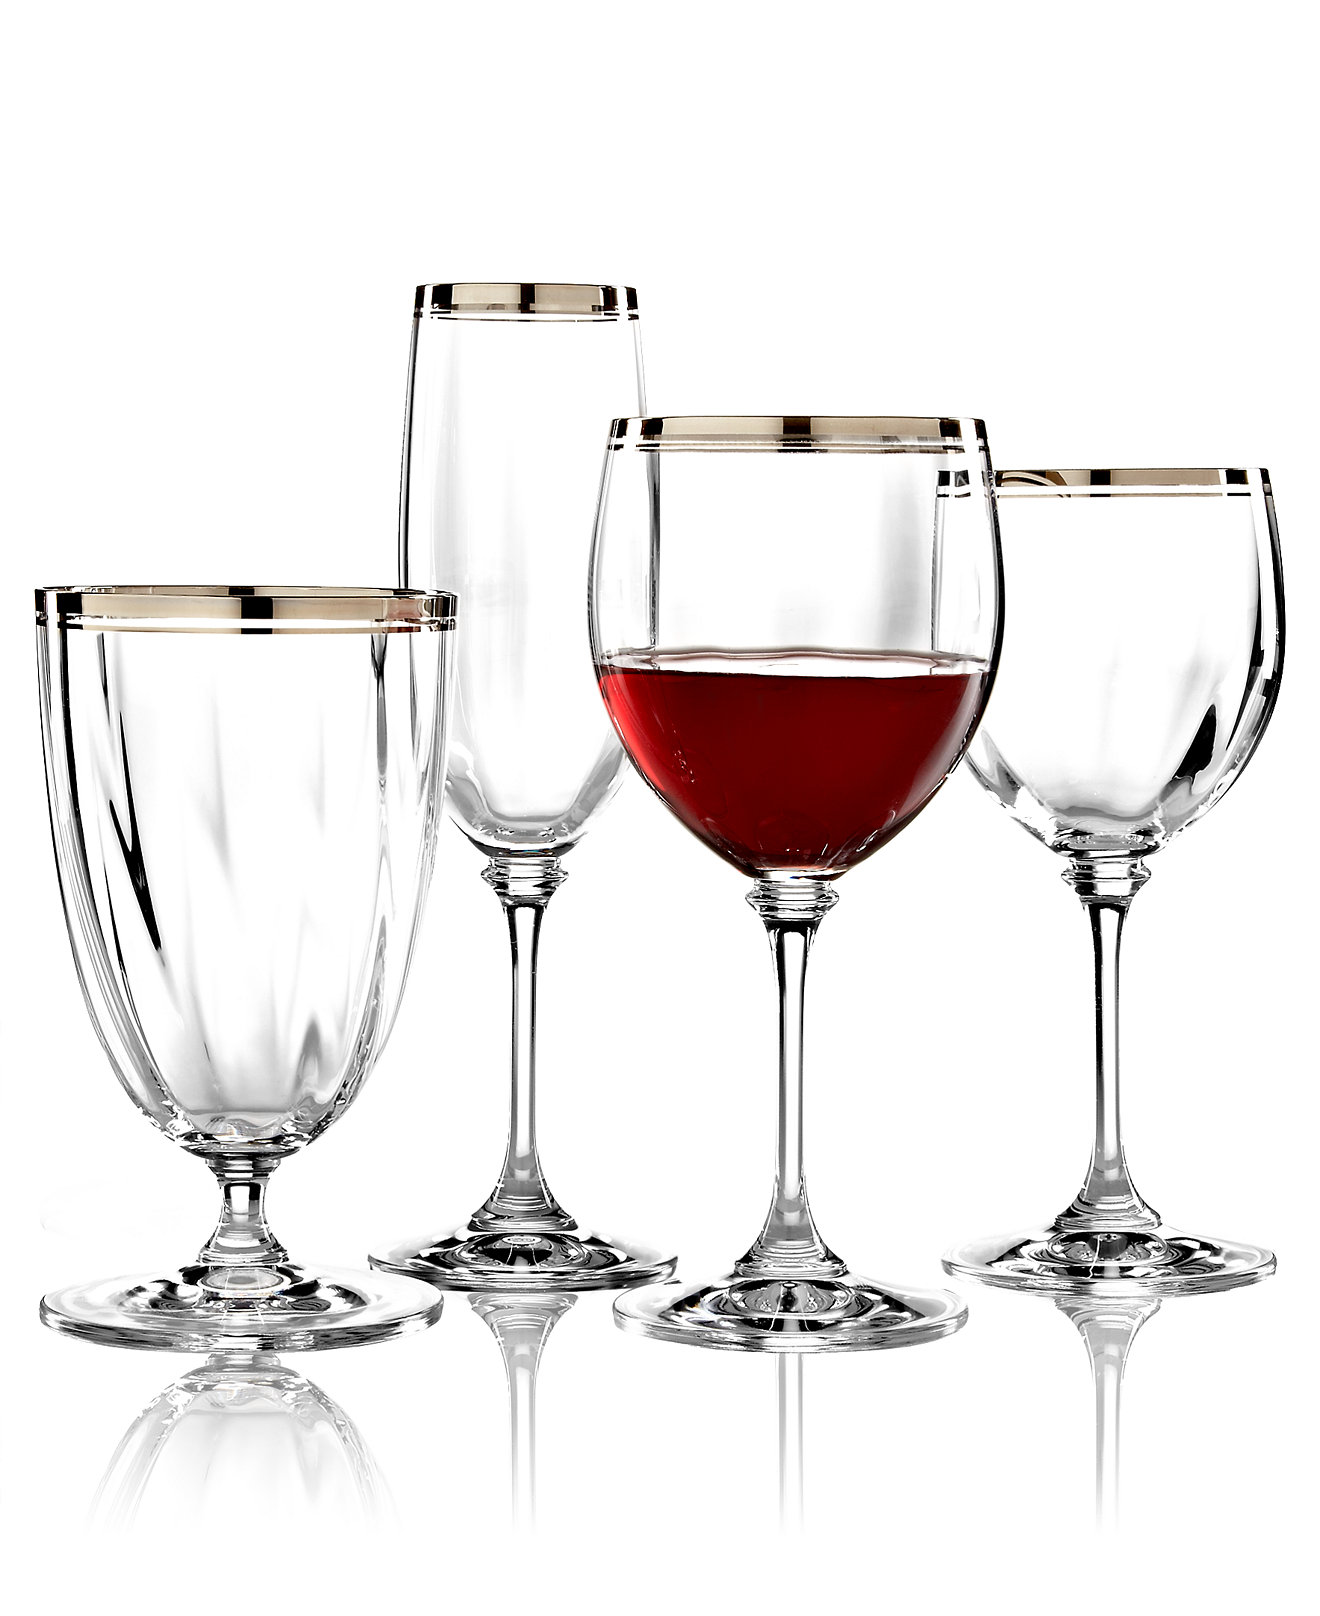 Beautiful Mikasa Wine Glasses for Stemware or Serveware: Mikasa Wine Glasses With Platinum For Stemware